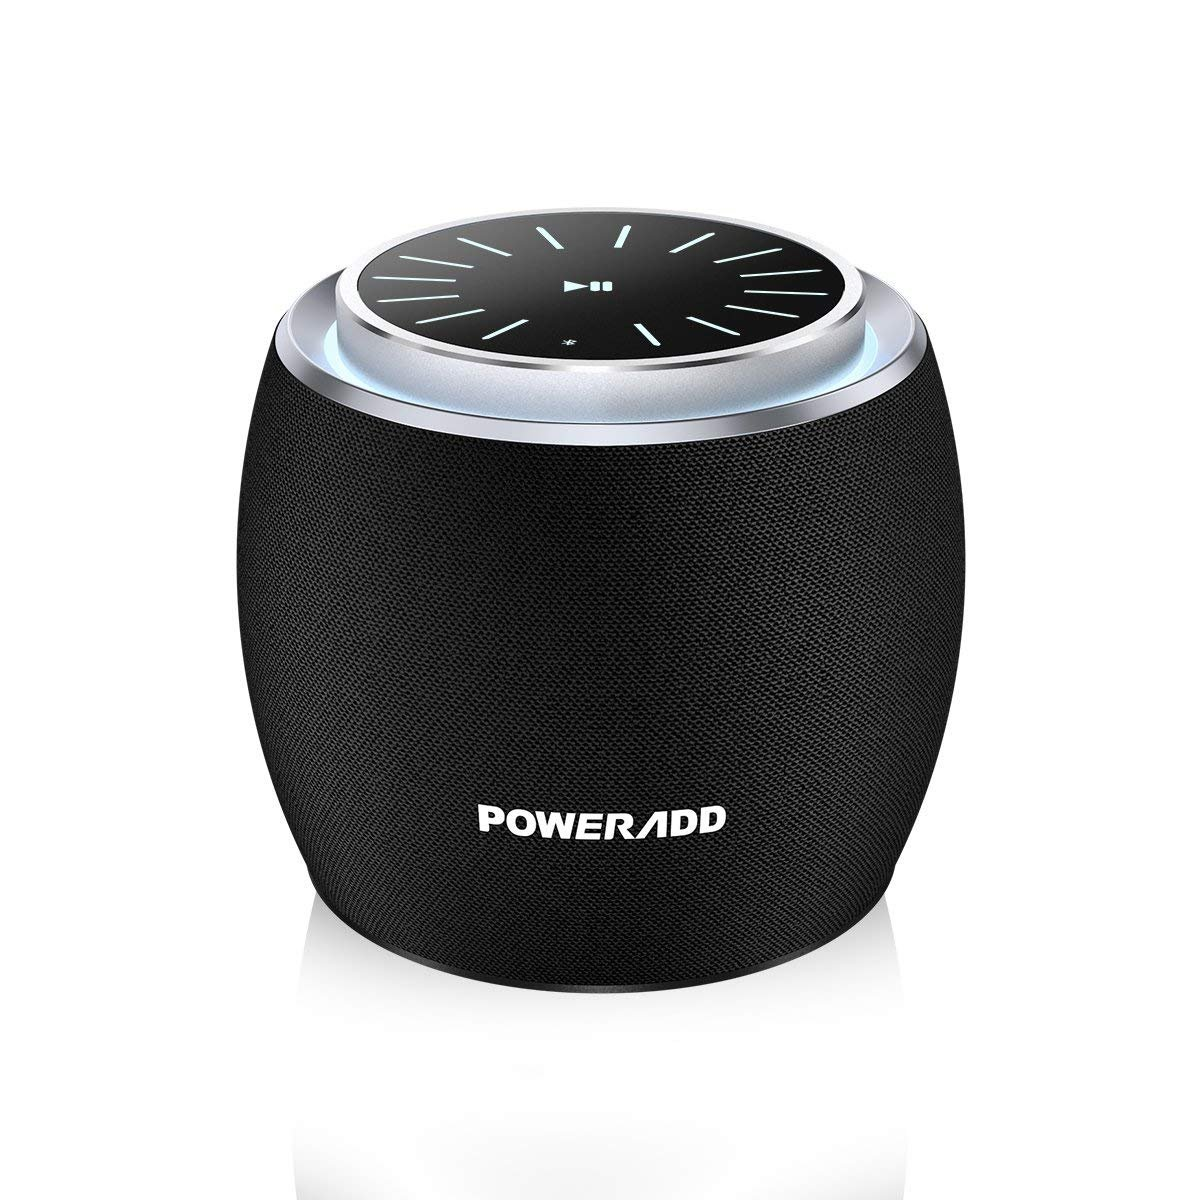 Poweradd Dee-G Mini,Super-Portable Bluetooth/Wireless Speakers,Rotating Volume Knob,Full Range Sound,Fabricated Exterior,5W Speakers,33-Foot Bluetooth Range,8 Hours Playtime,Built-in Mic,Black